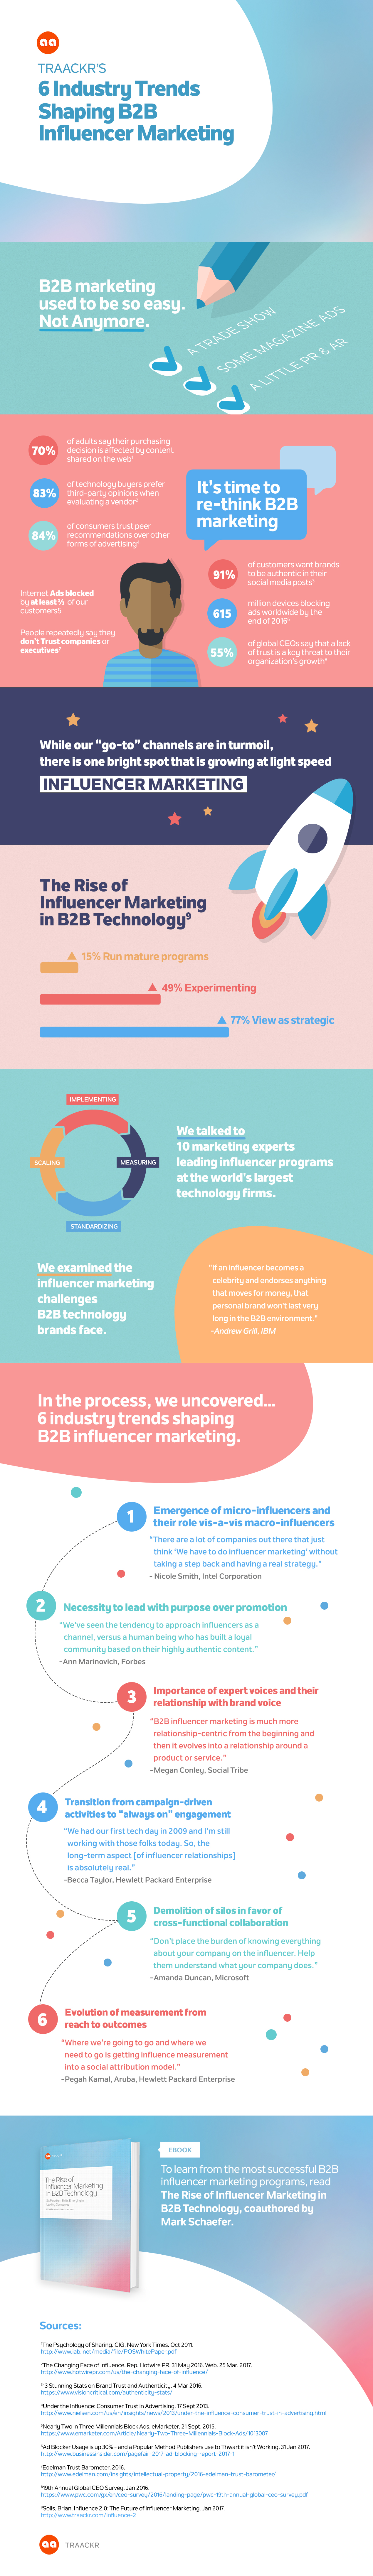 Traackr's 6 Industry Trends Shaping B2B Influencer Marketing